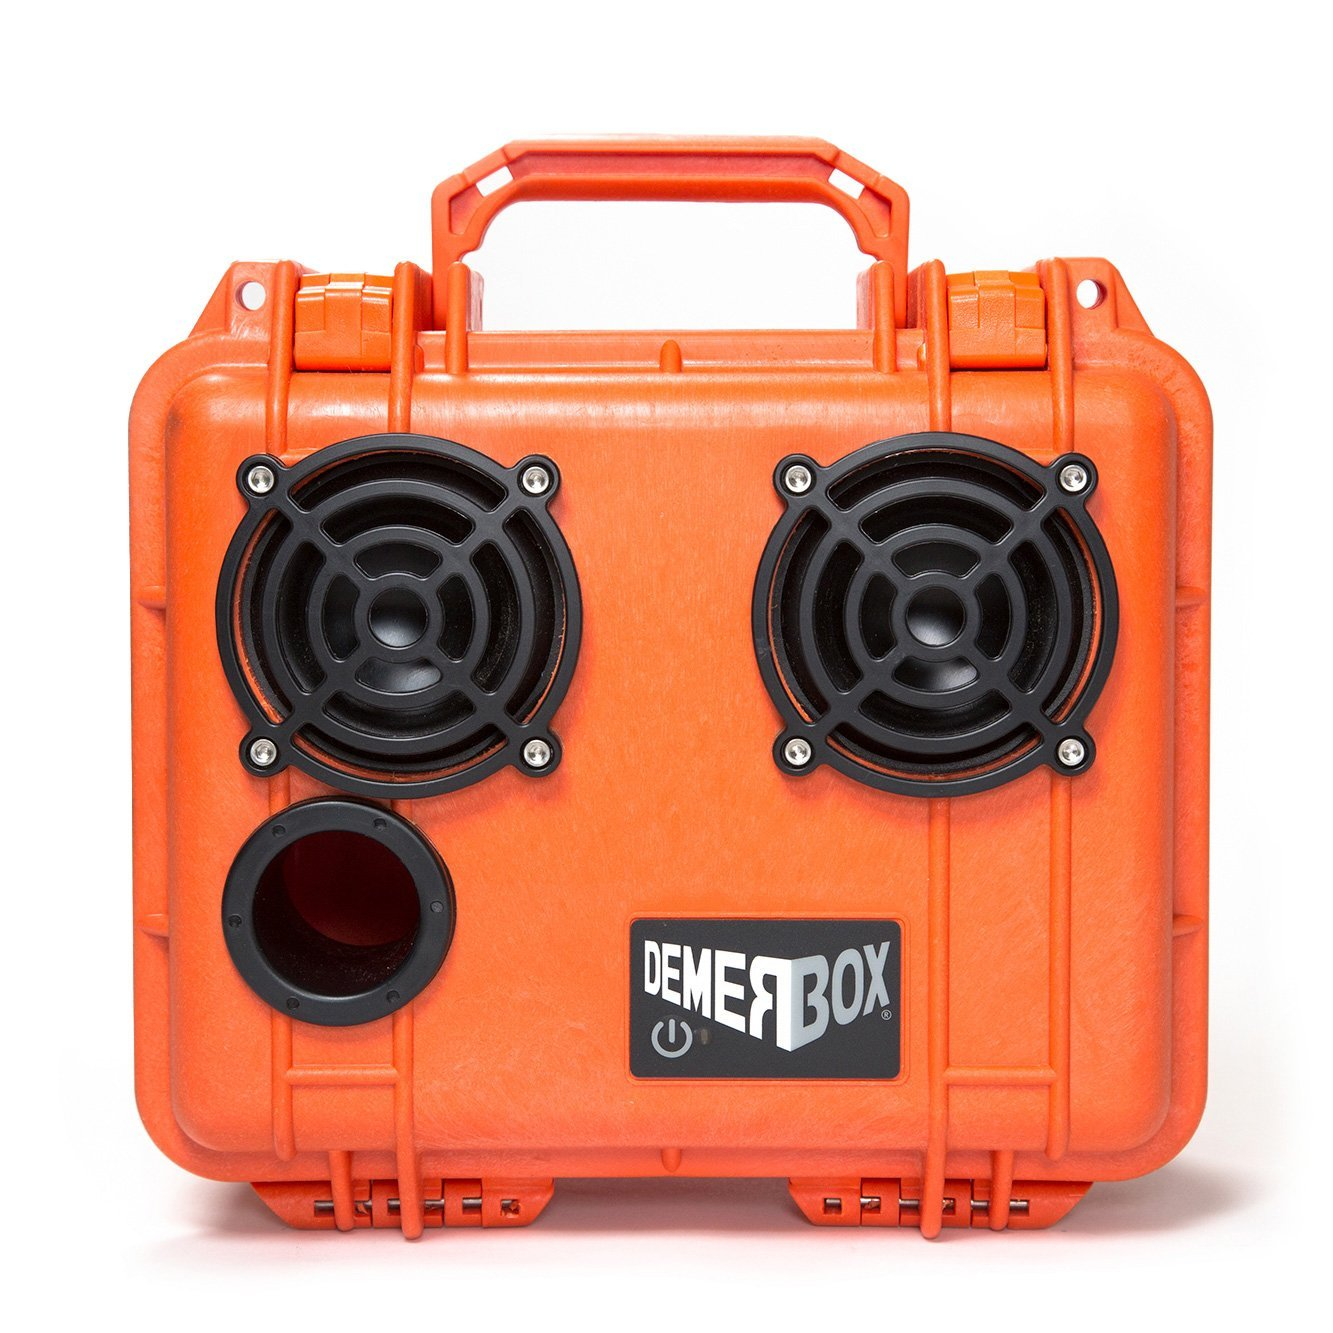 46dd0ae85f DemerBox  World s Toughest Waterproof Bluetooth Speakers. Portable Rugged  Bluetooth Speakers with Deep Bass